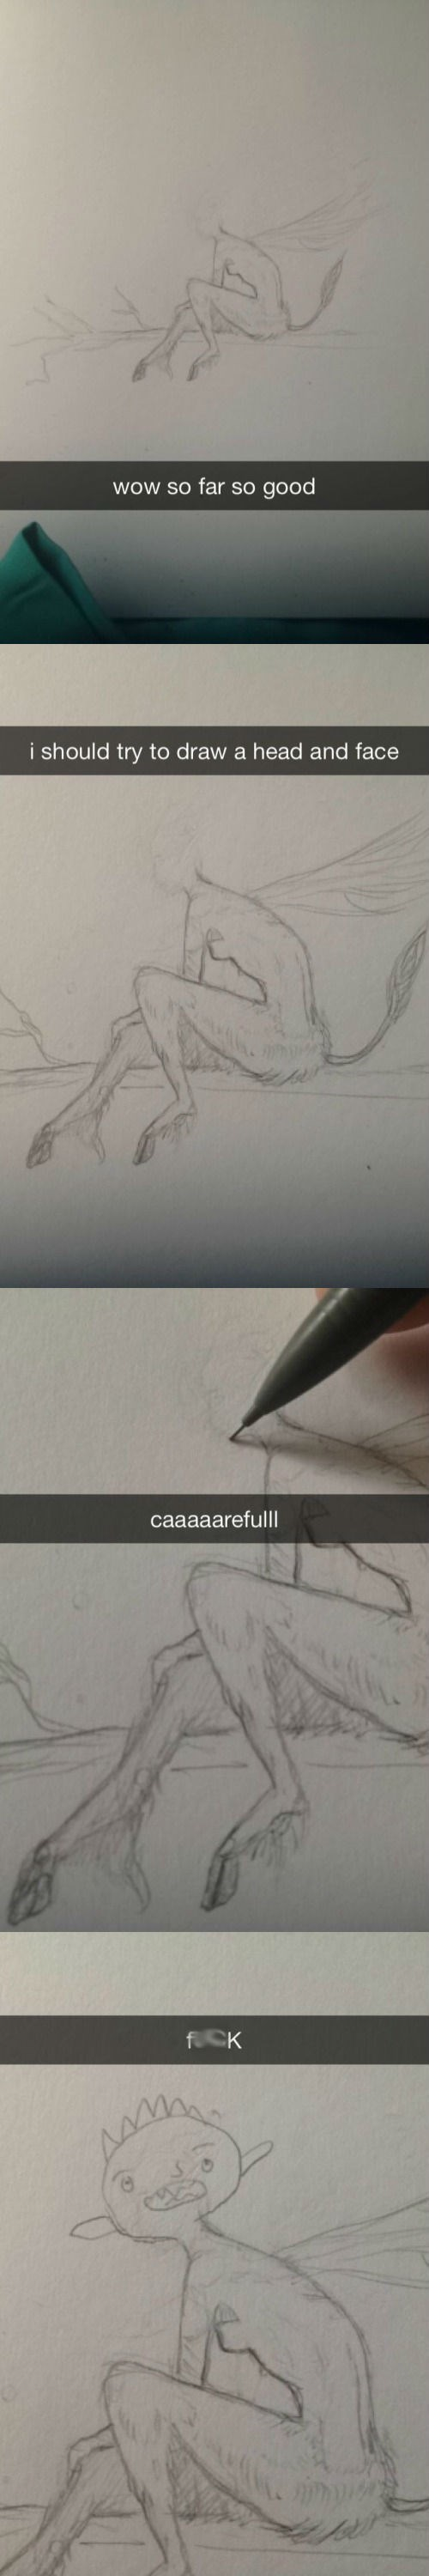 funny memes drawing difficulty